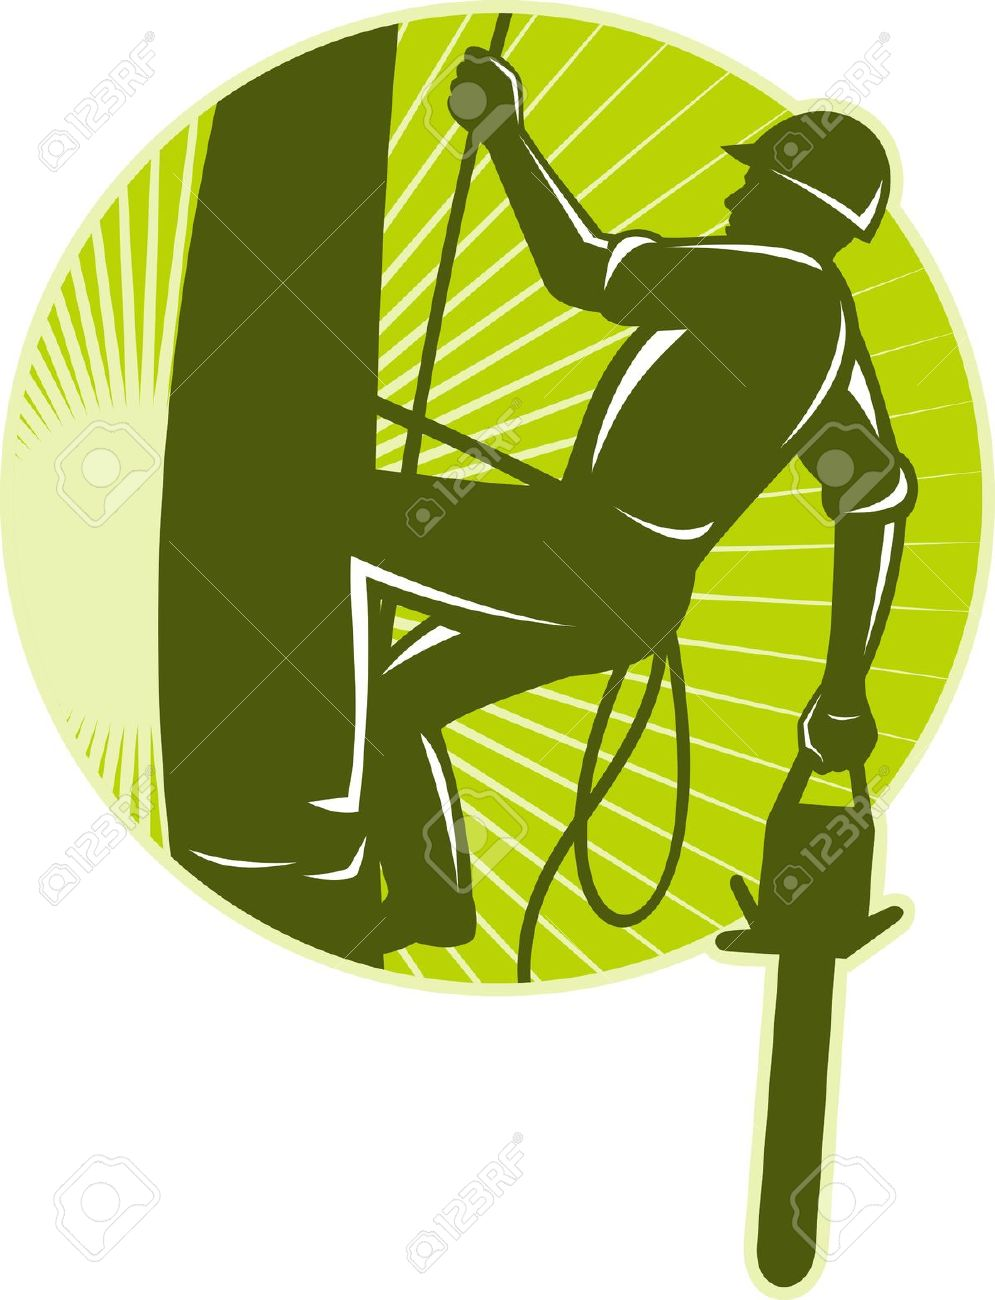 Illustration Of An Arborist Tree Surgeon With Chainsaw Climbing.